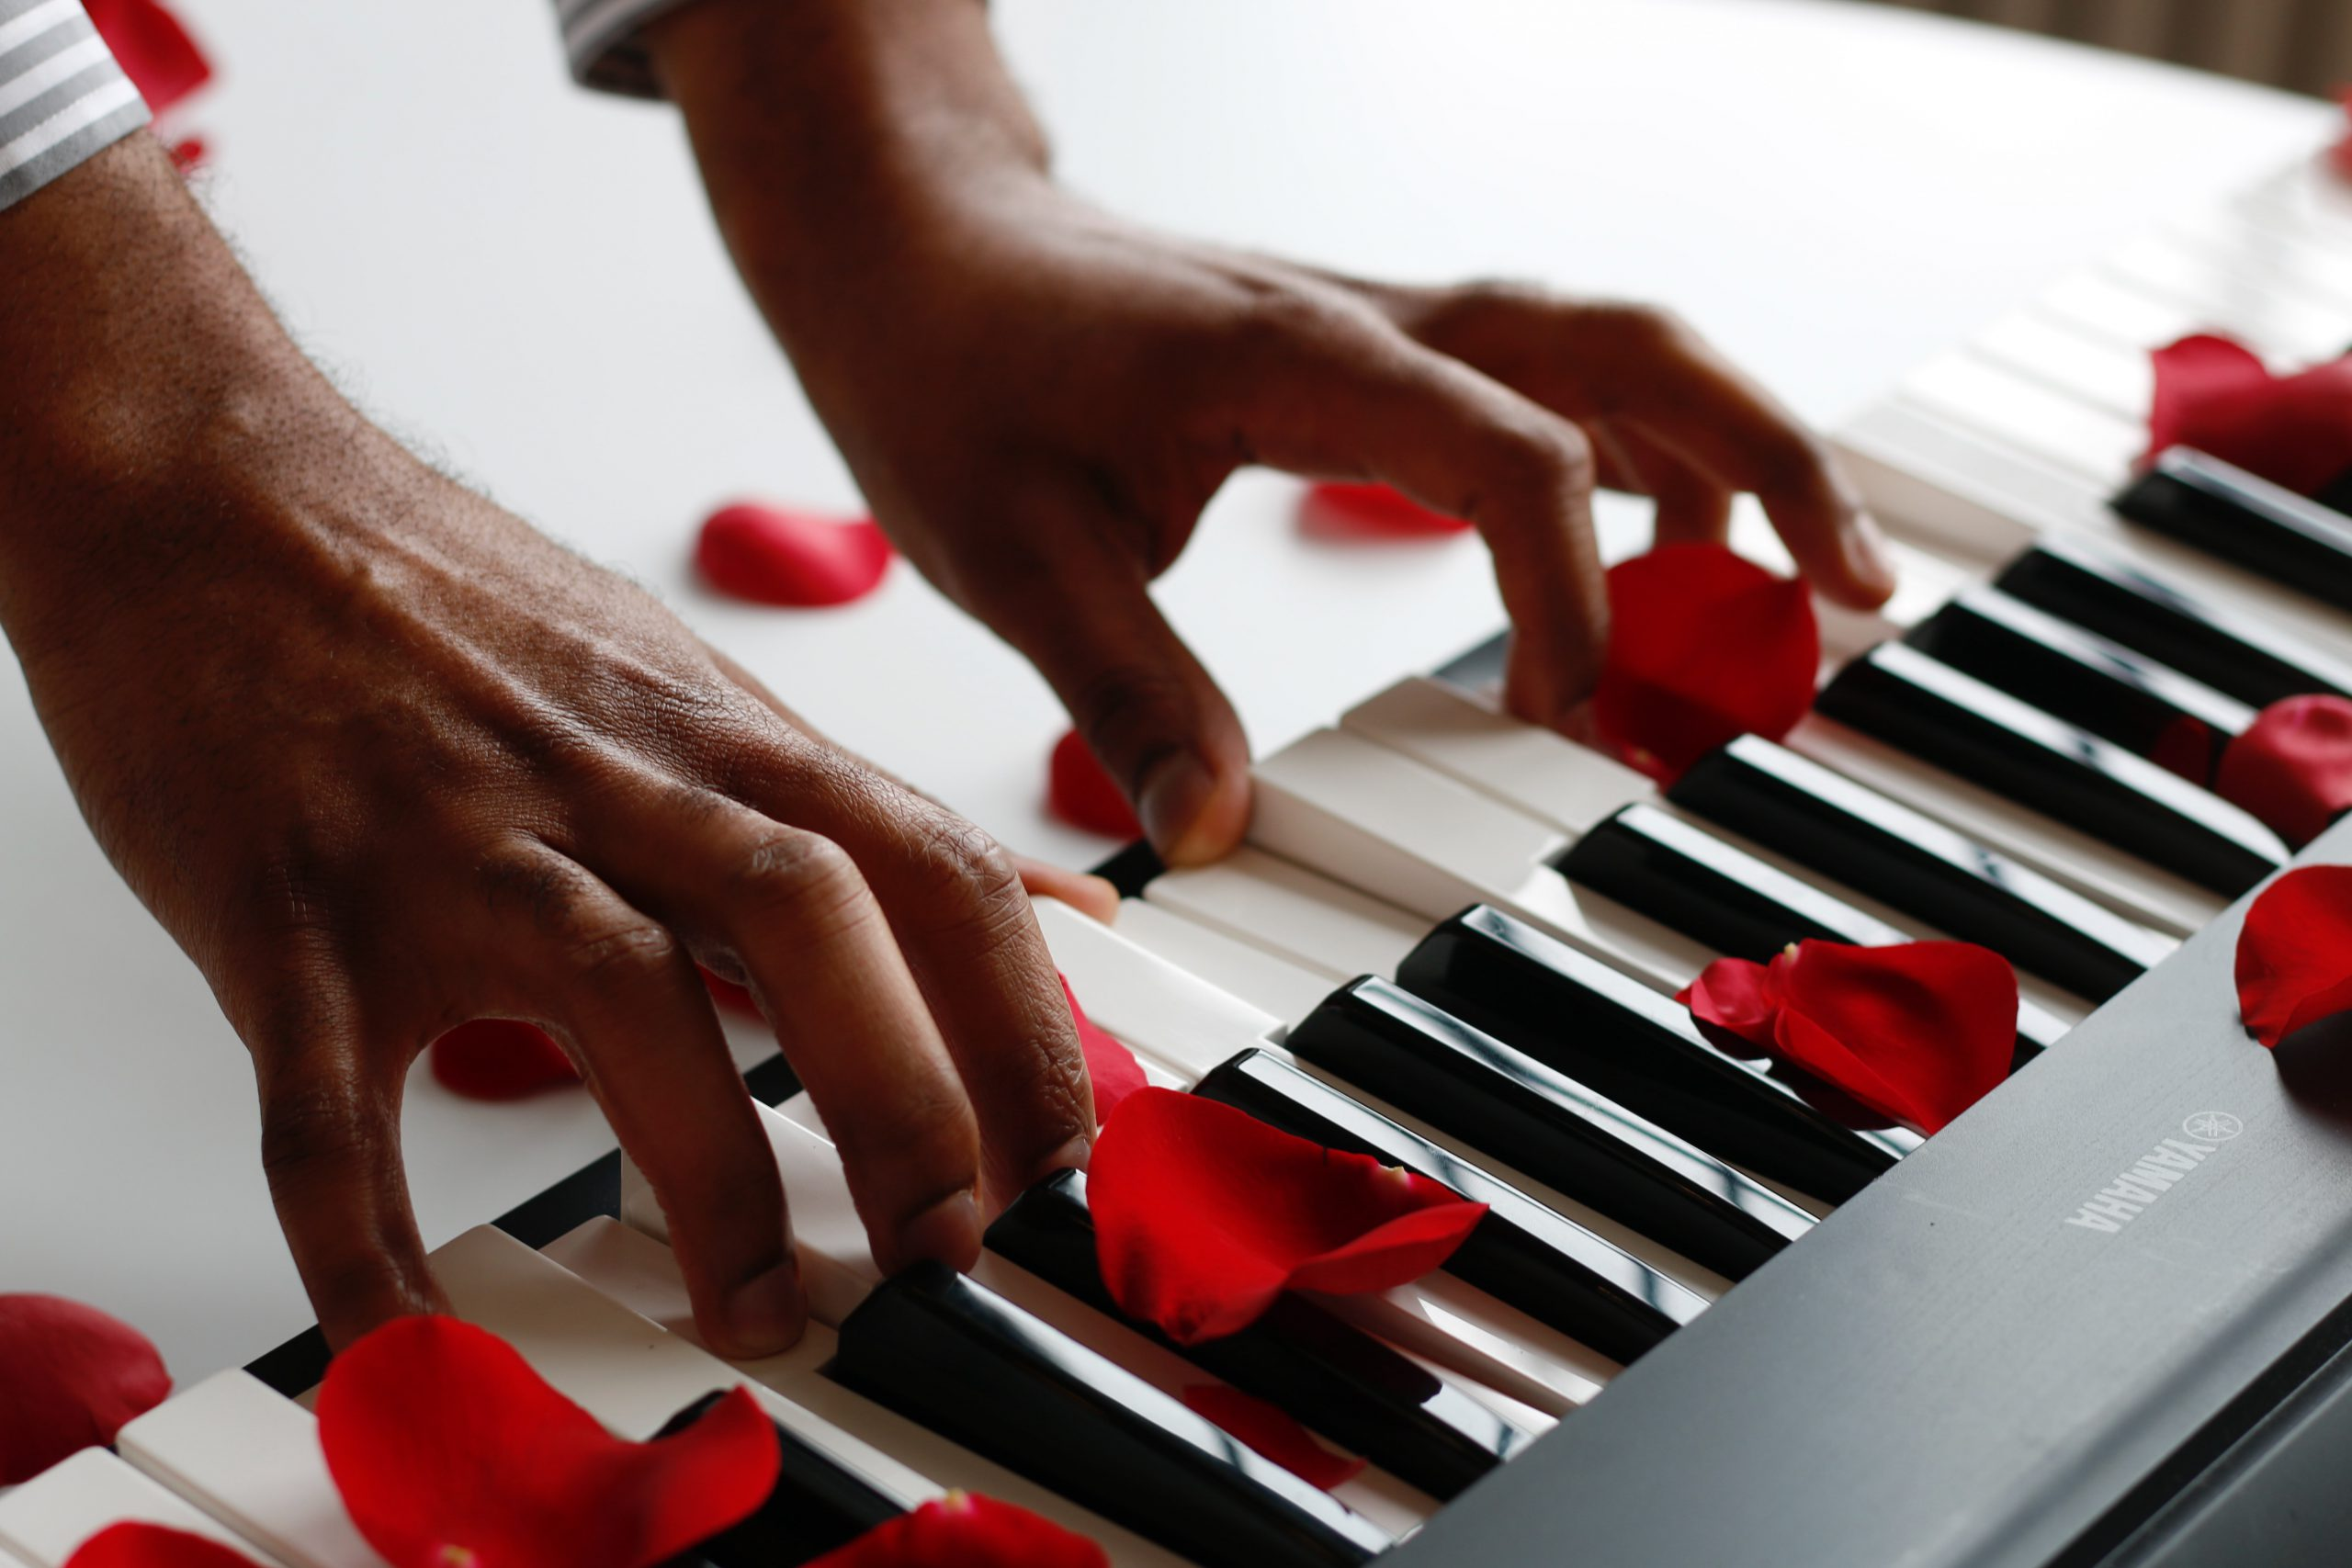 red rose petals on a white keyboard while someone is playing